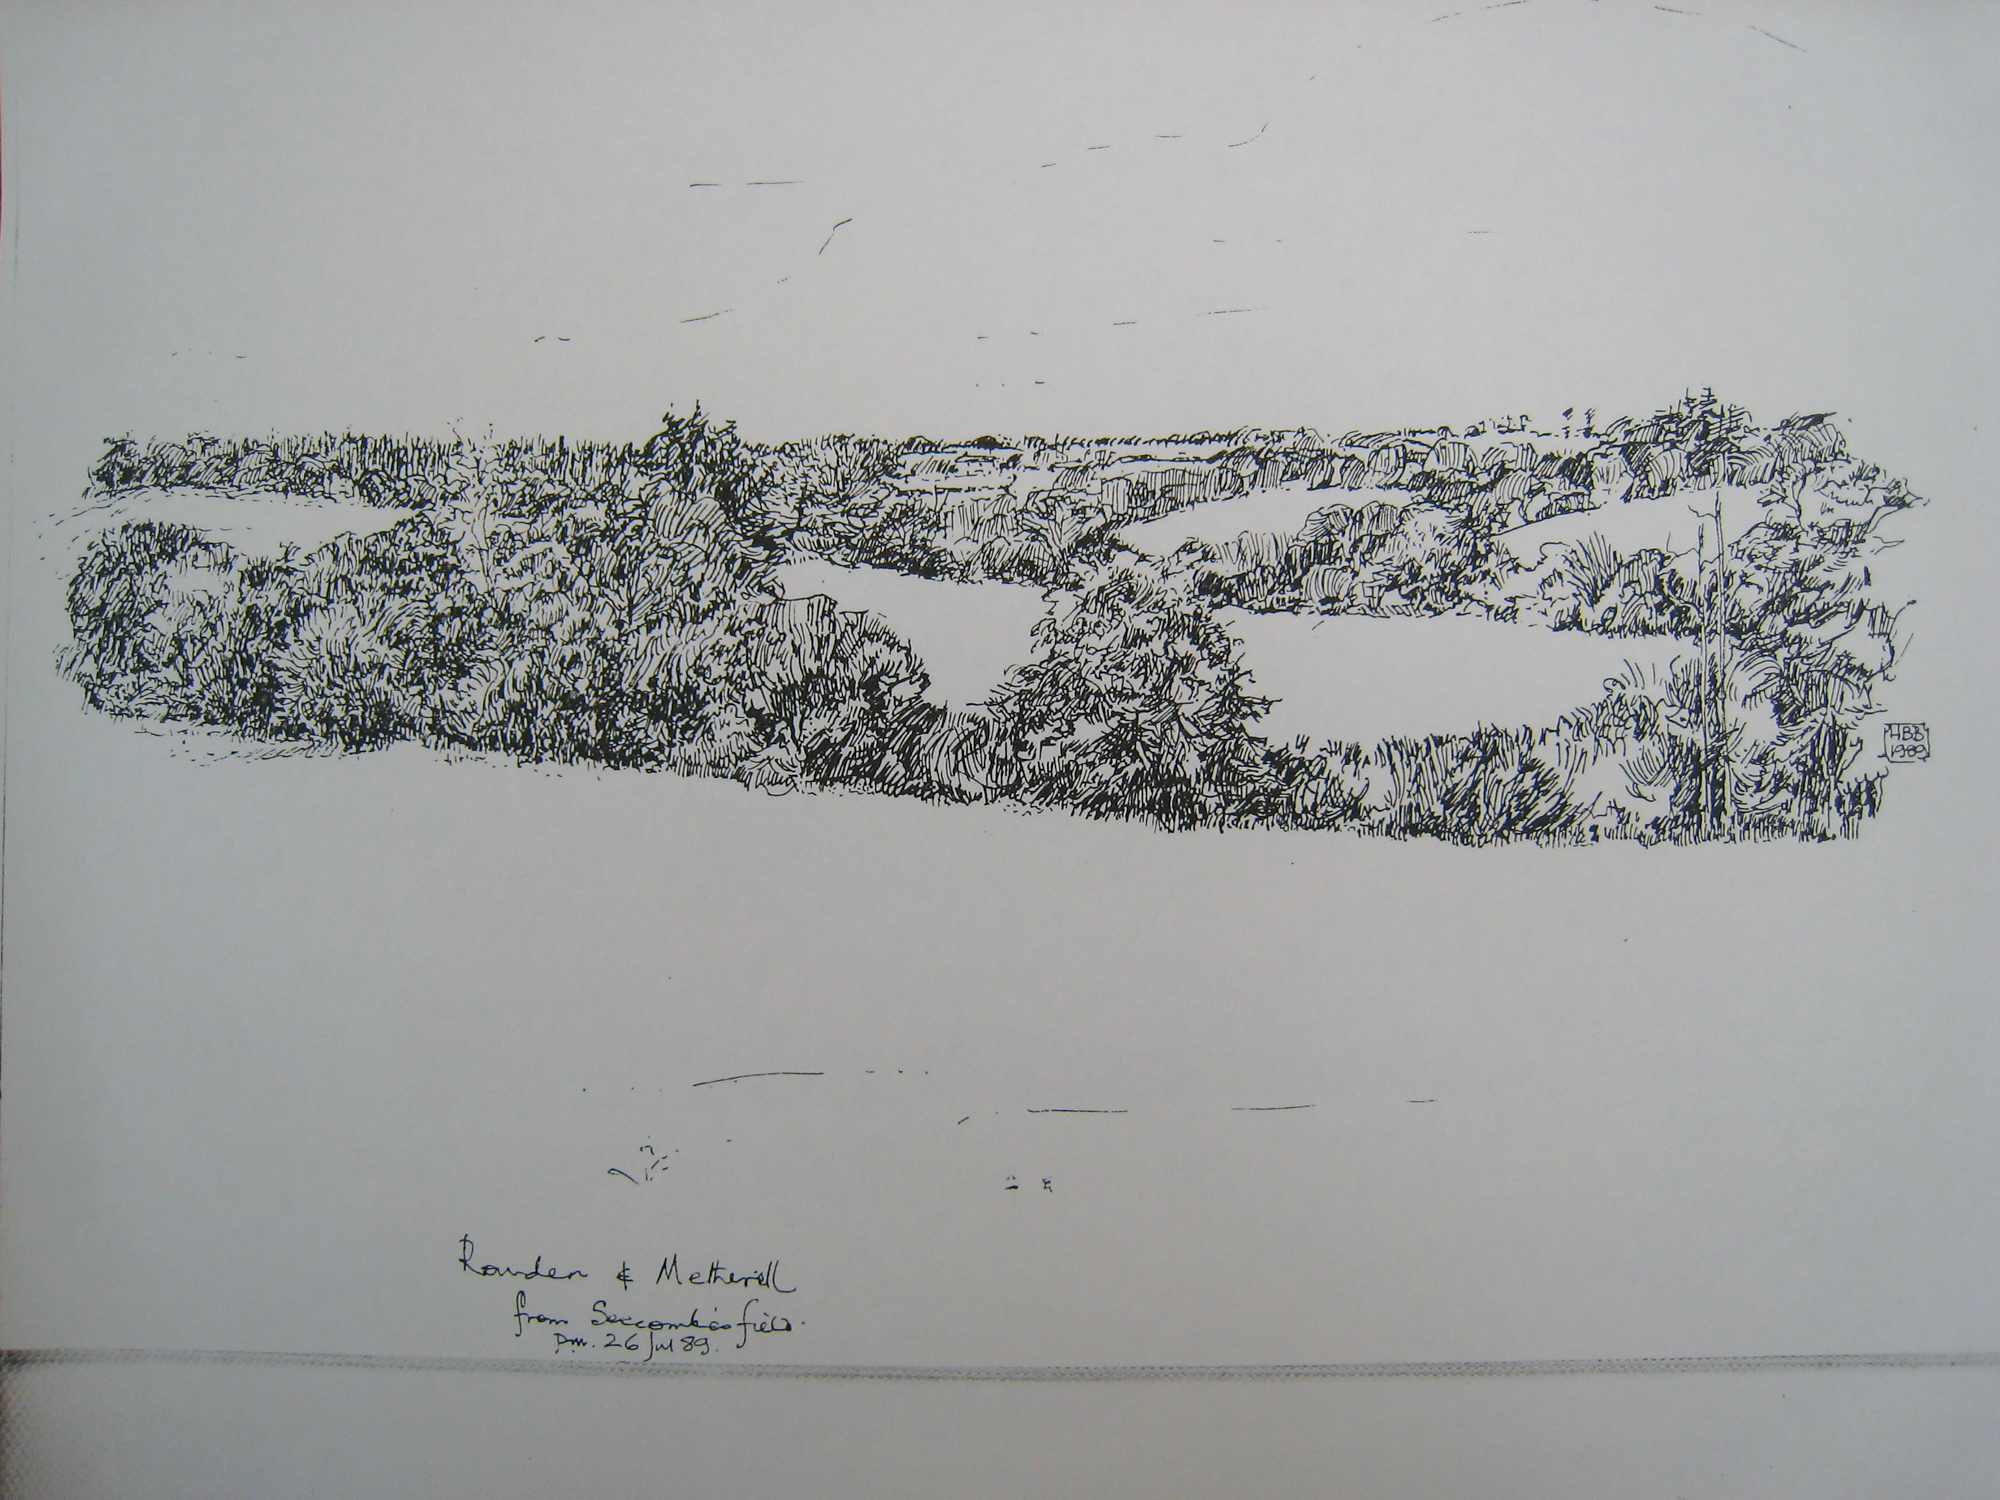 Germansweek landscapes, Rowden and Metherell from Seccombe's field